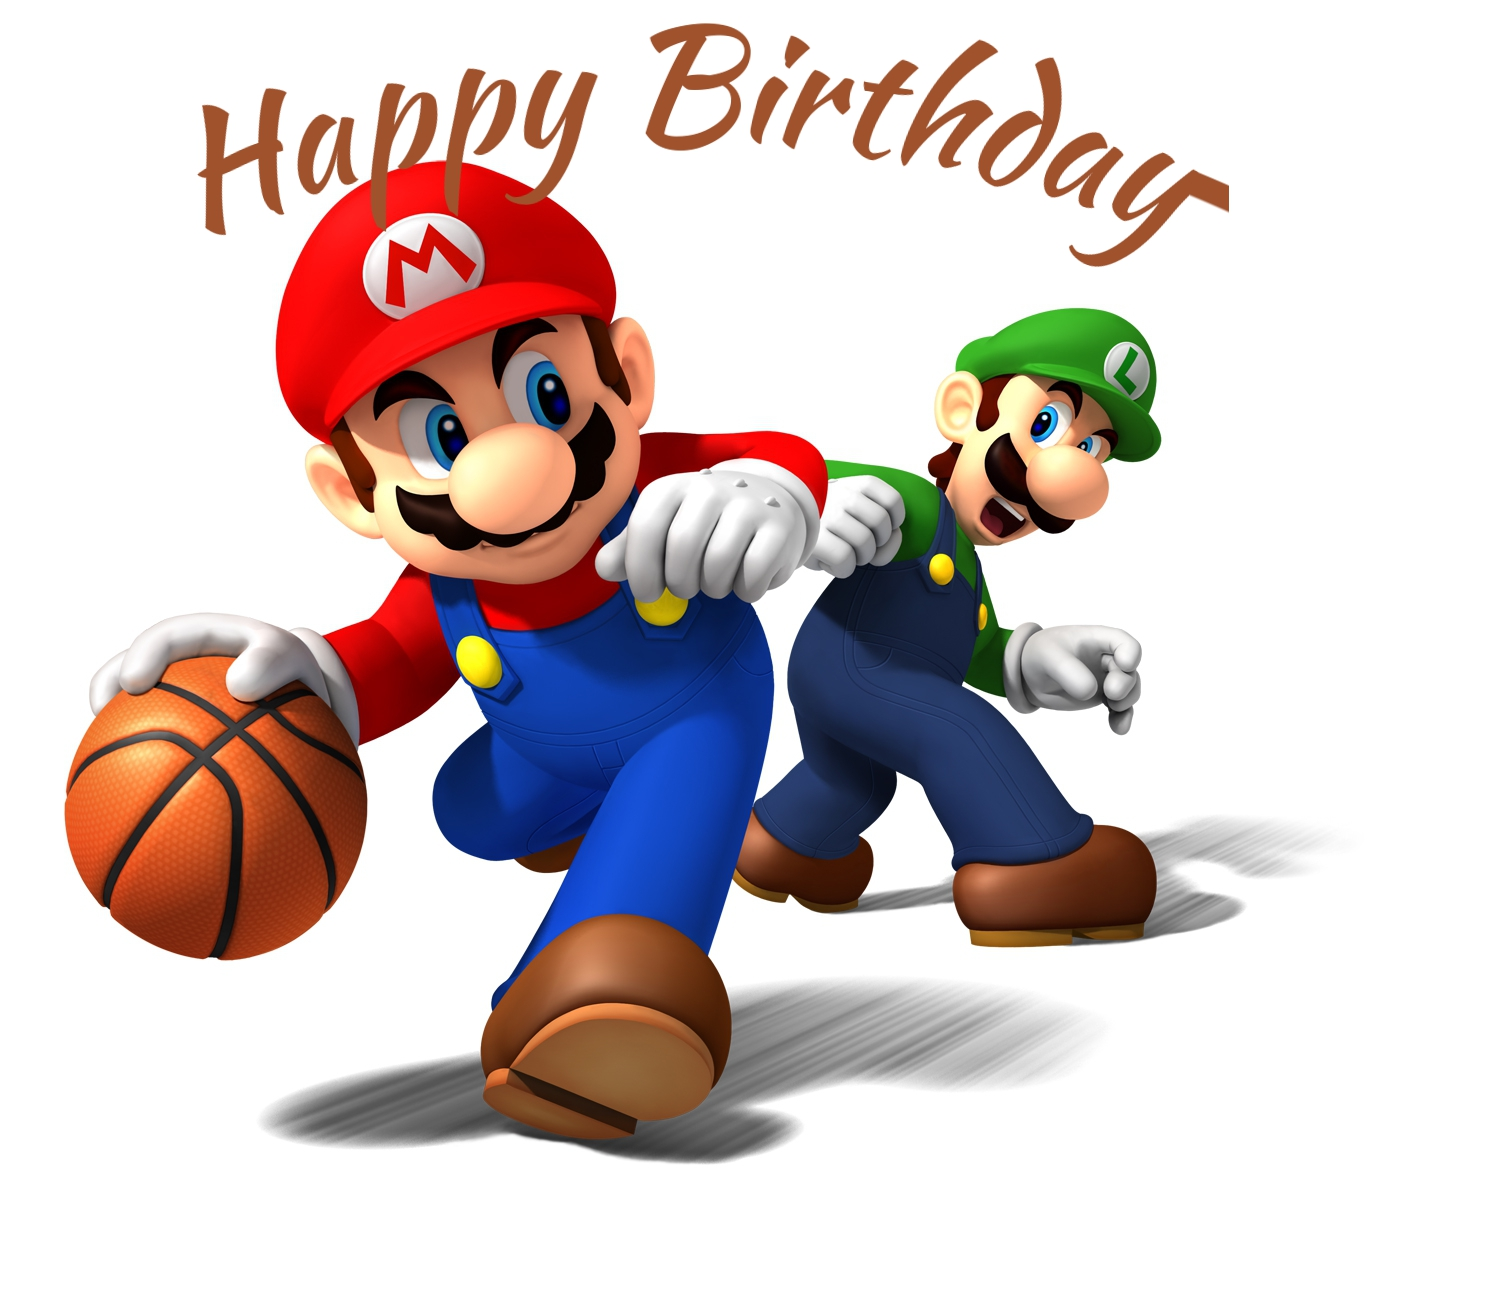 Mario and Luigi birthday cards